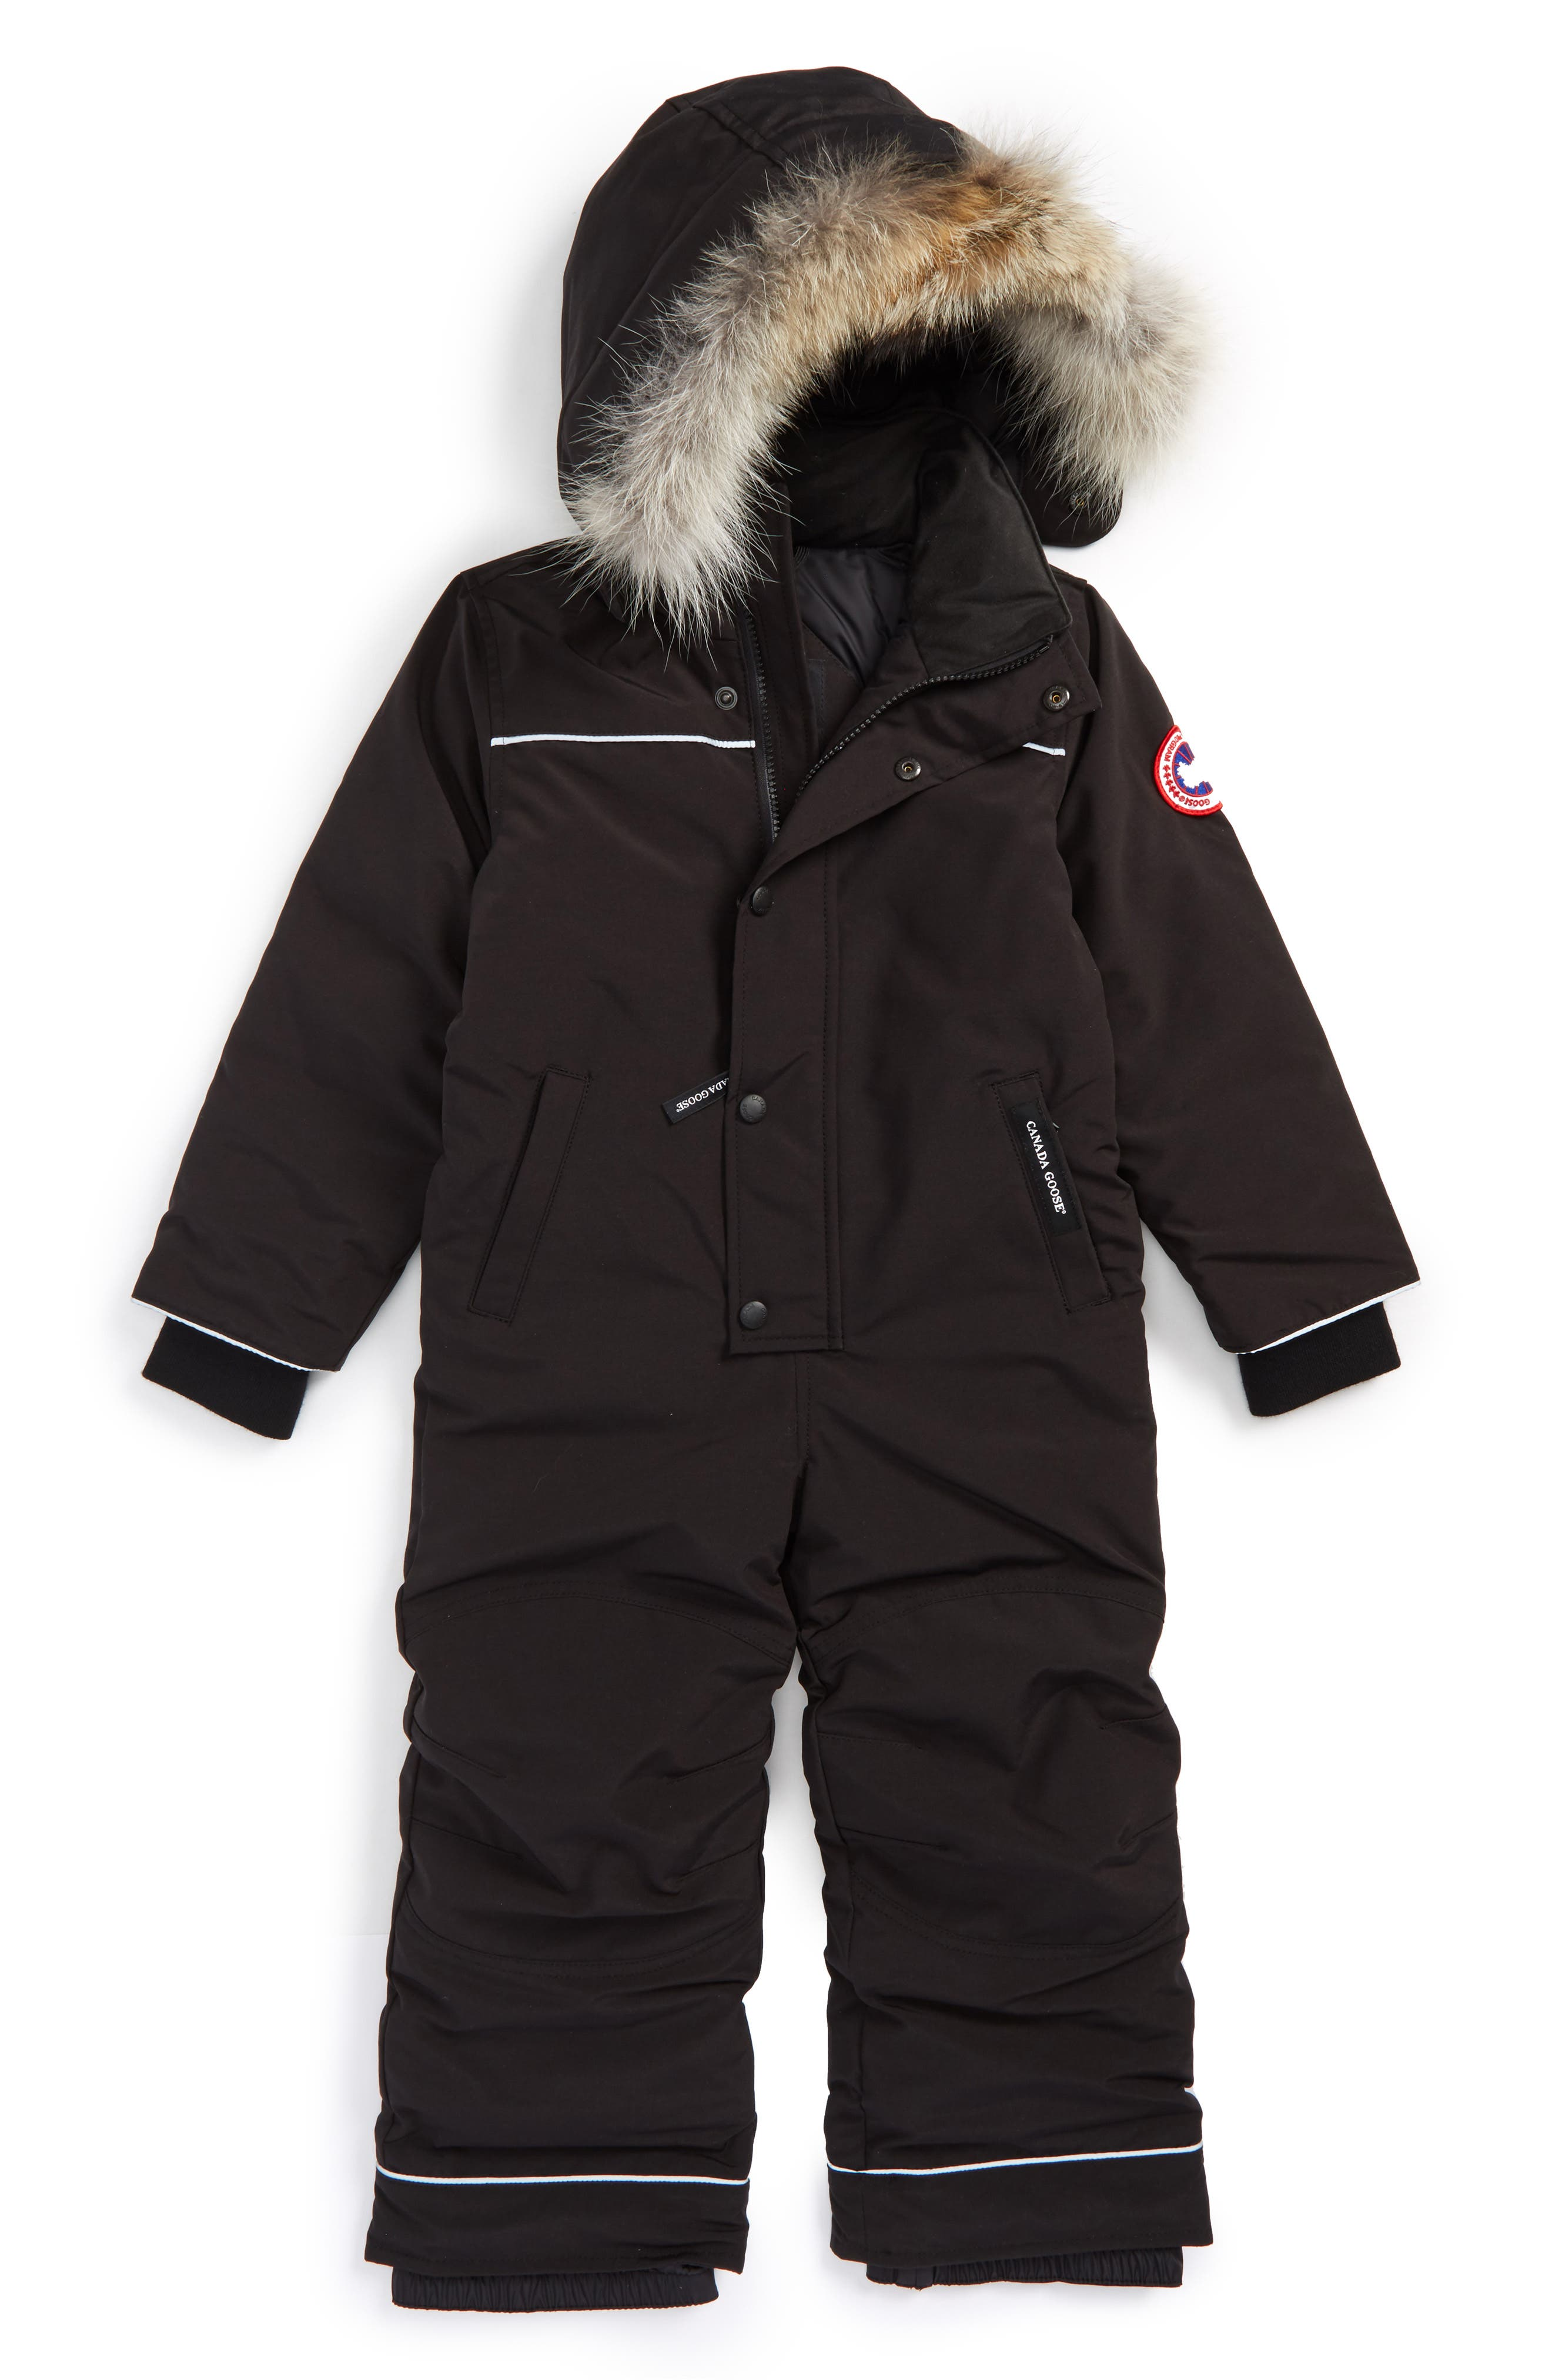 Canada Goose Baby Grizzly Snowsuit with Genuine Coyote Fur Trim (Toddler Kids & Little Kids)